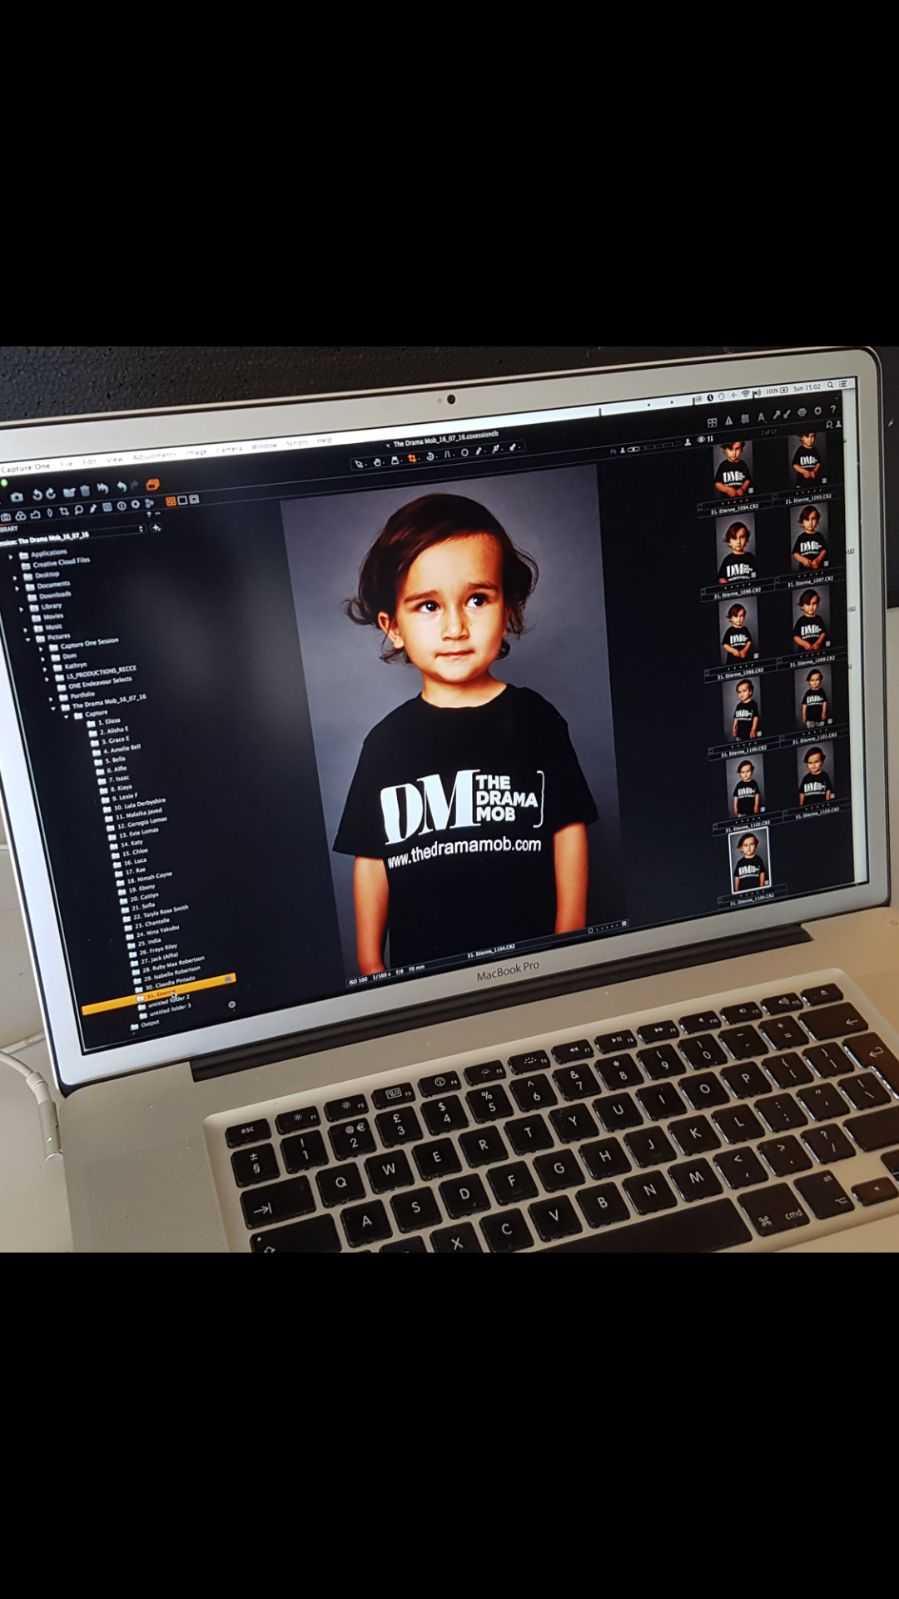 RT @thedramamob: Photo update day with @DomBrophy, we have some stunning children on our books #castings https://t.co/HiyirmwhwC